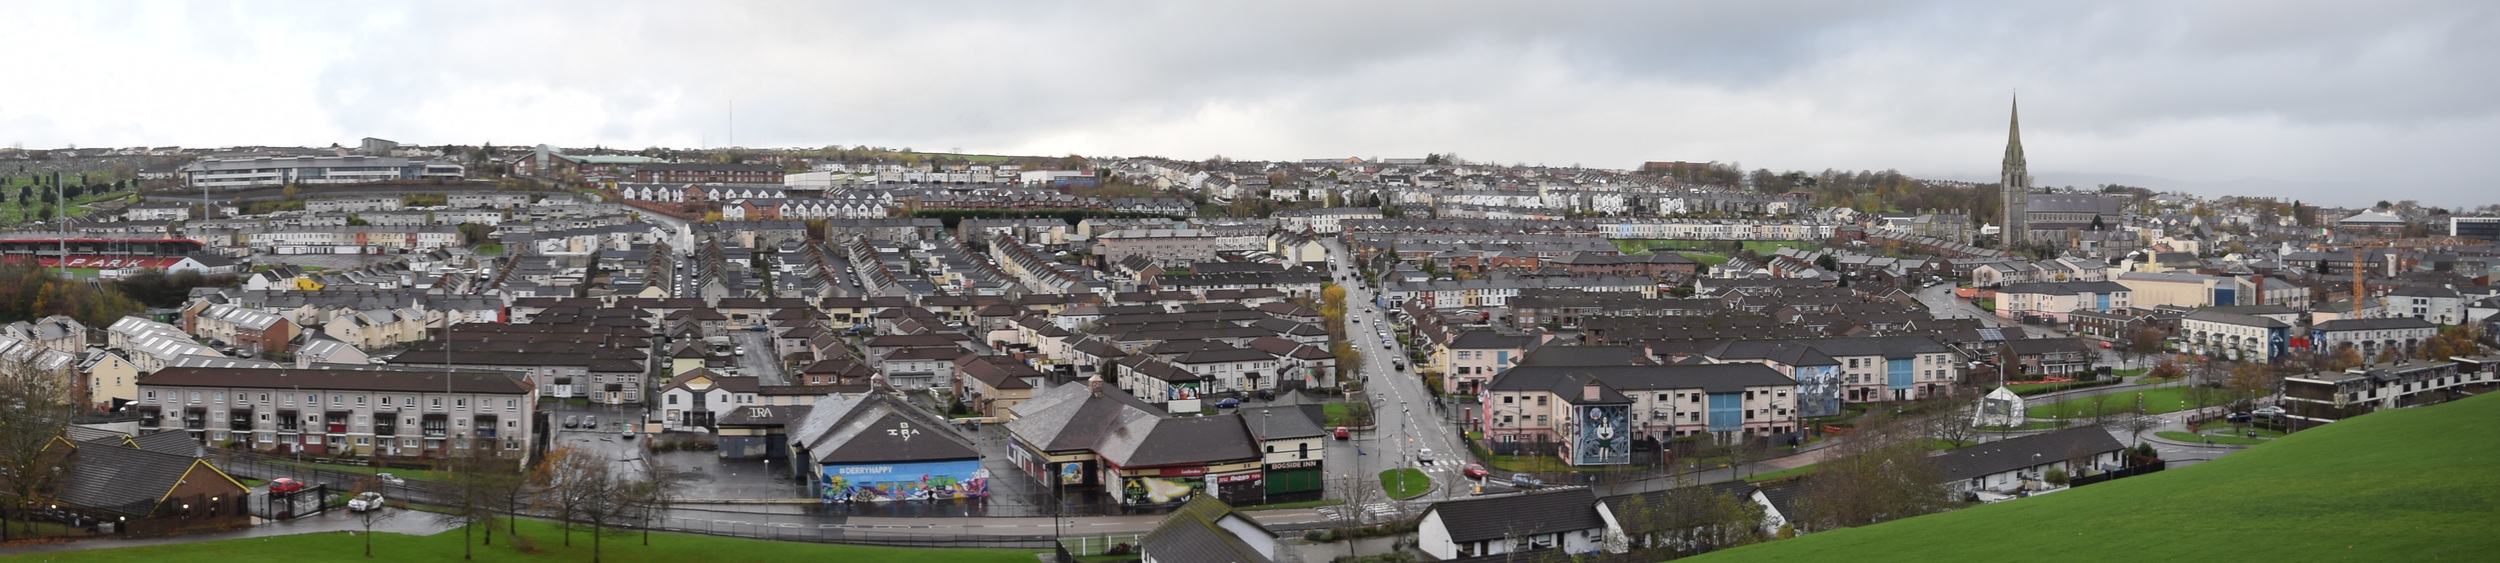 The Bogside in Derry viewed from the city walls